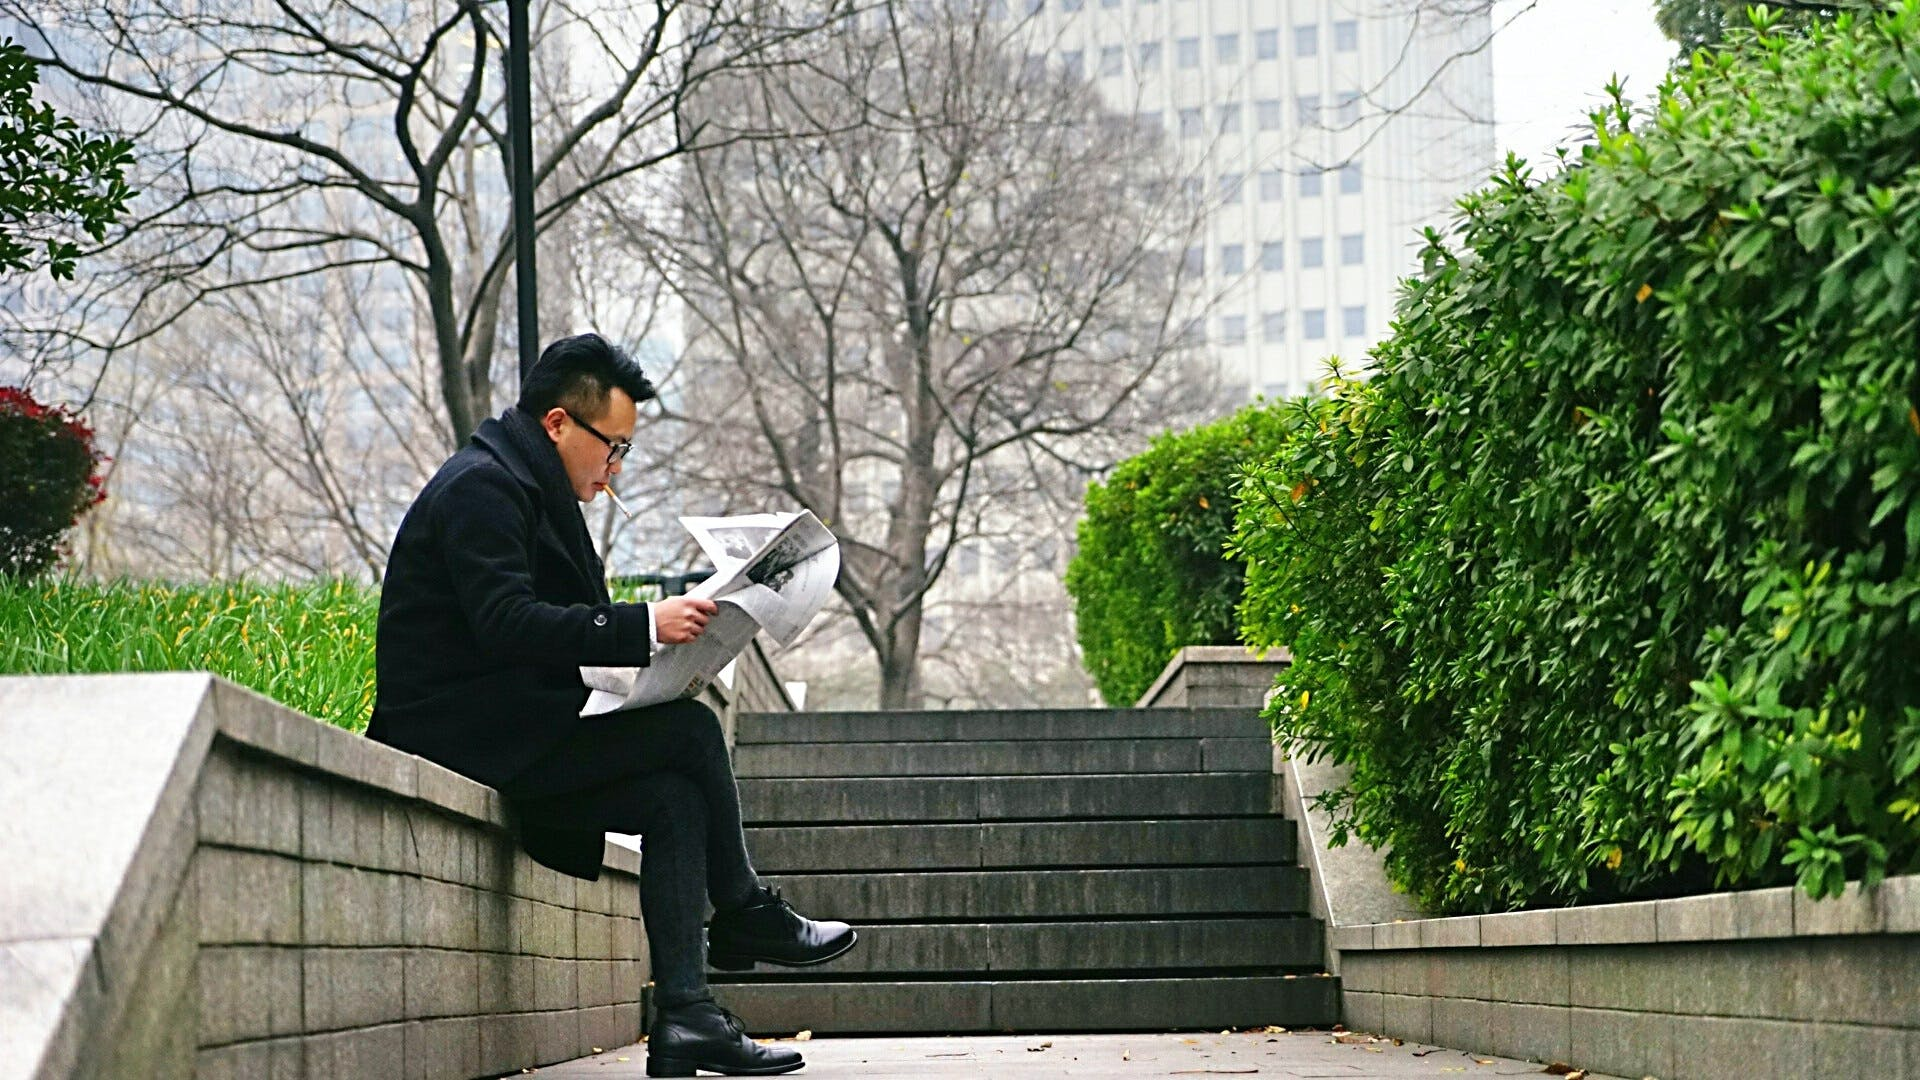 Man Reading Newspaper Sitting on Stair Wall